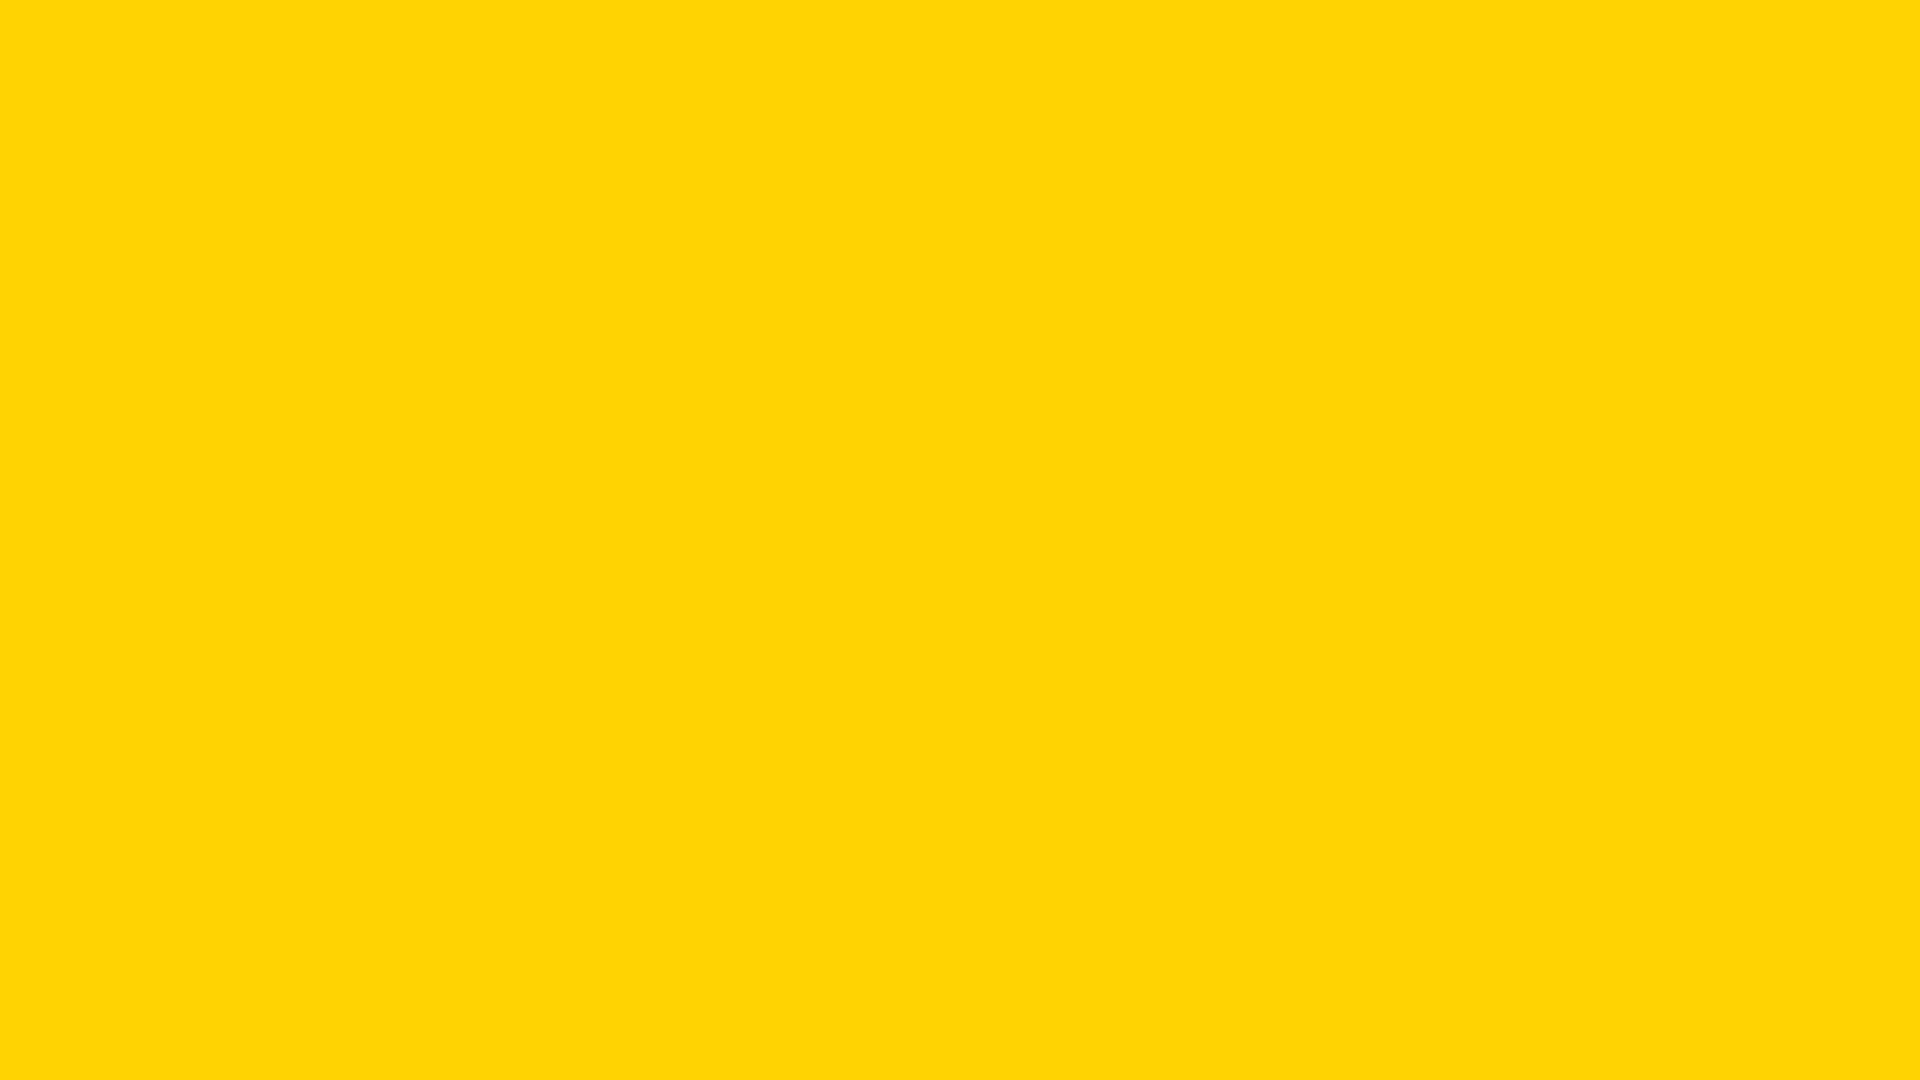 1920x1080 Cyber Yellow Solid Color Background